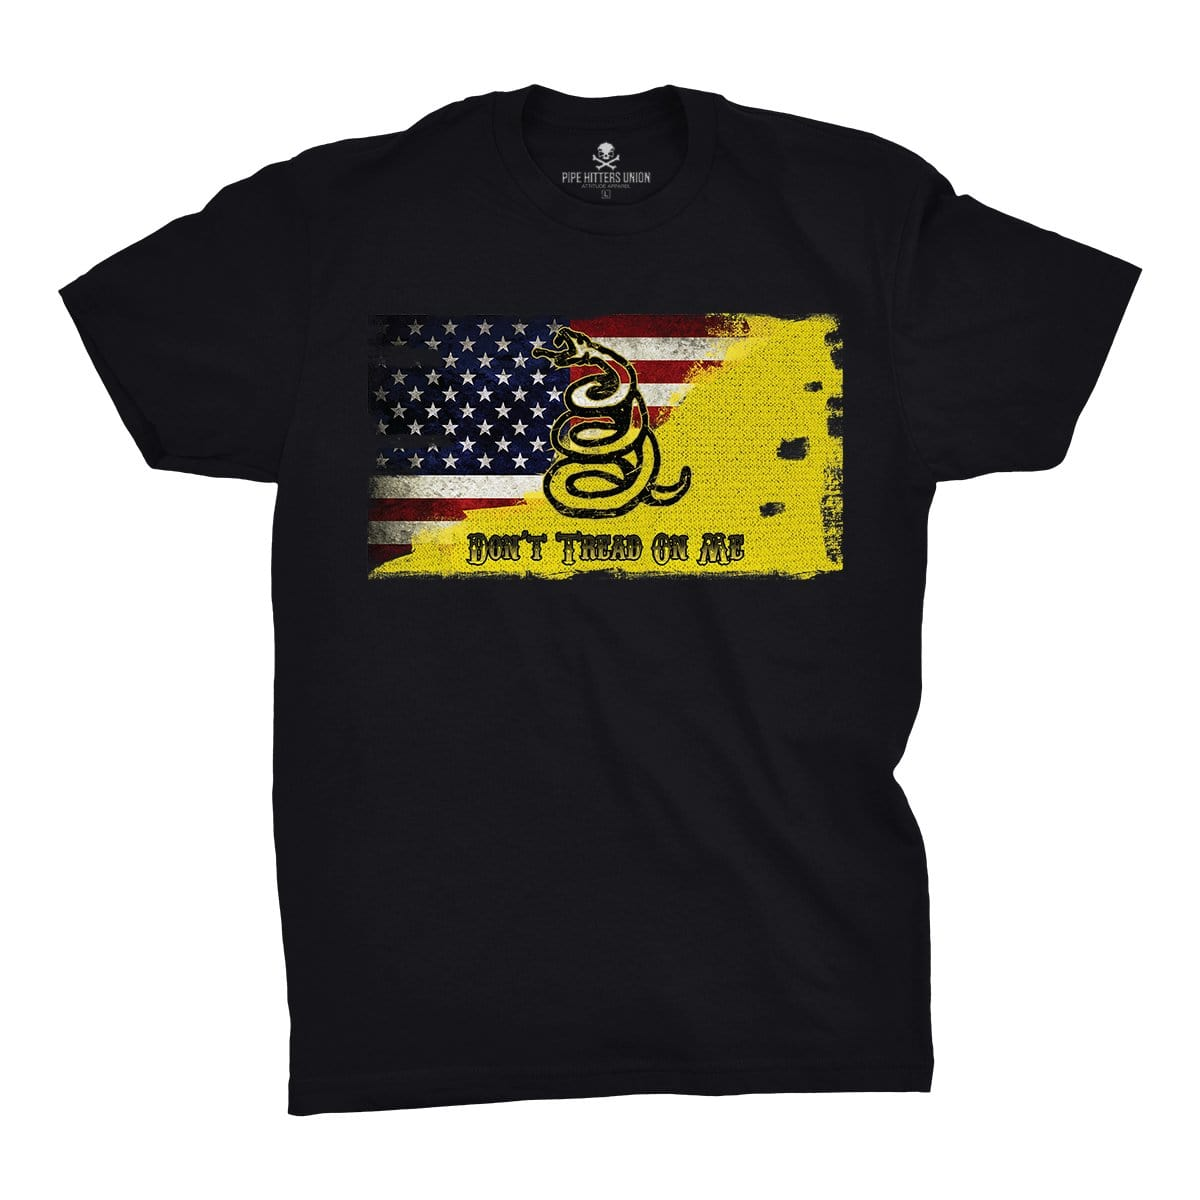 Modern Day Patriot - Black - T-Shirts - Pipe Hitters Union